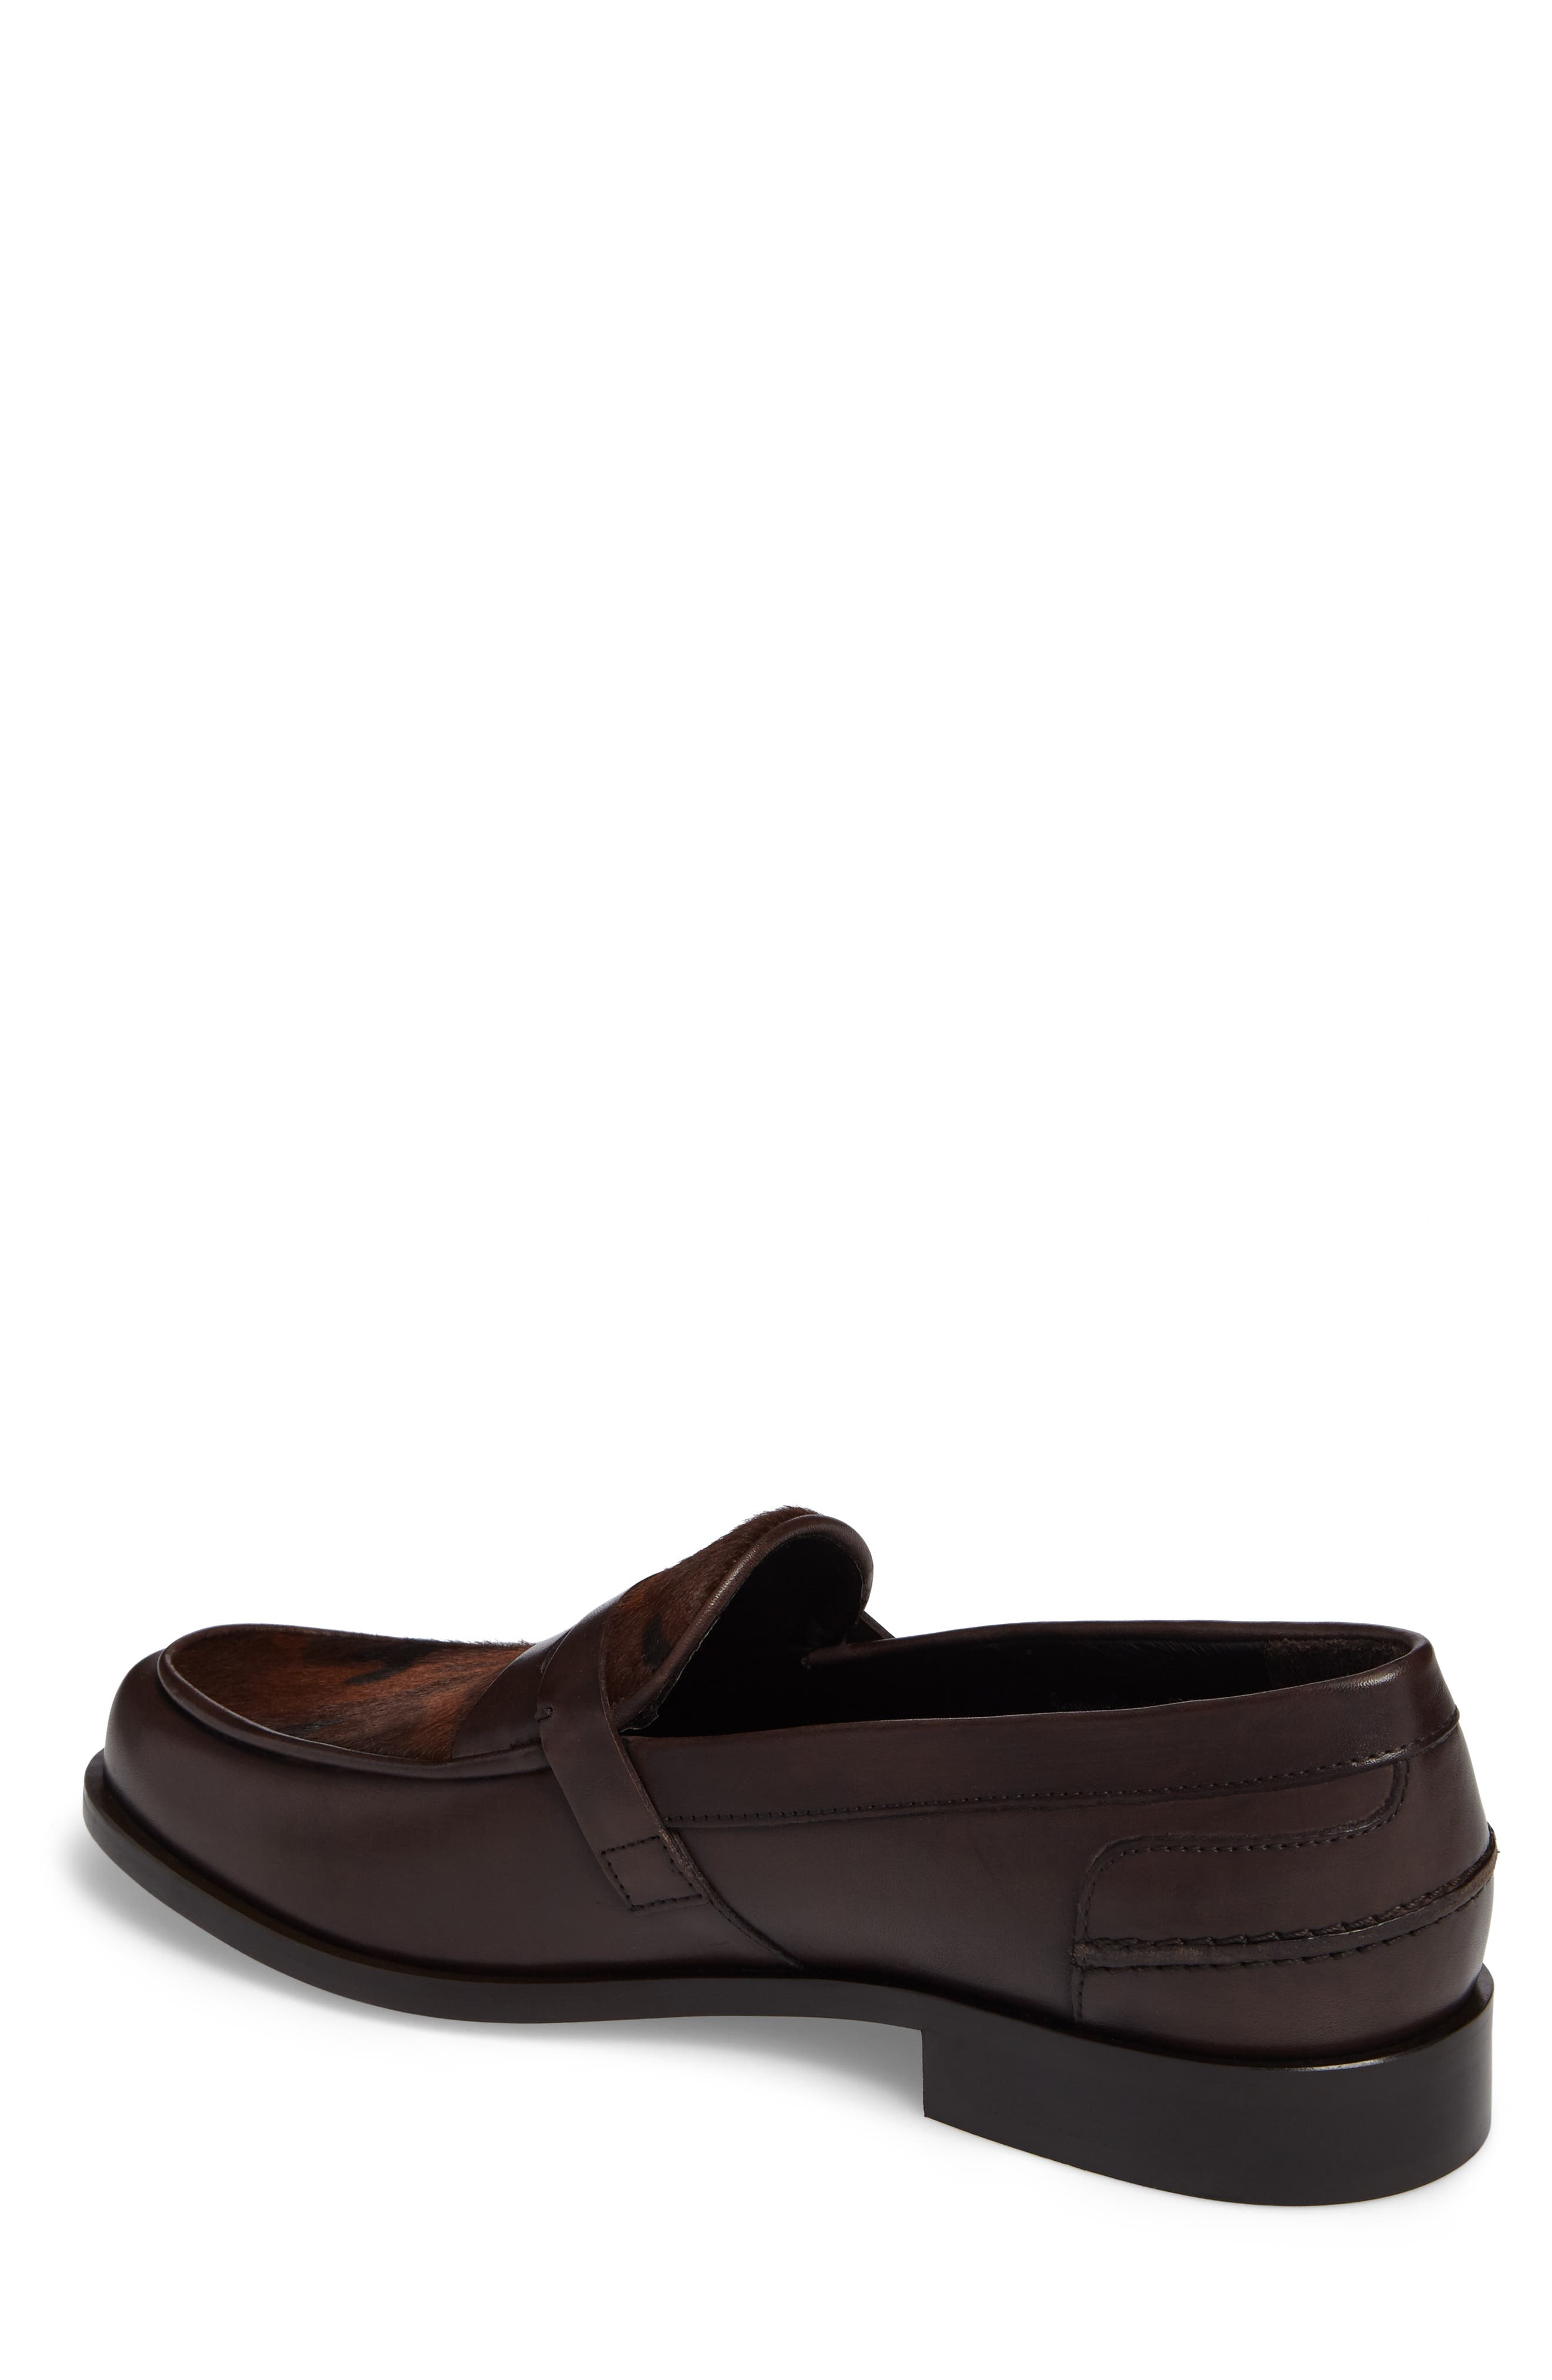 Sawyer Penny Loafer,                             Alternate thumbnail 4, color,